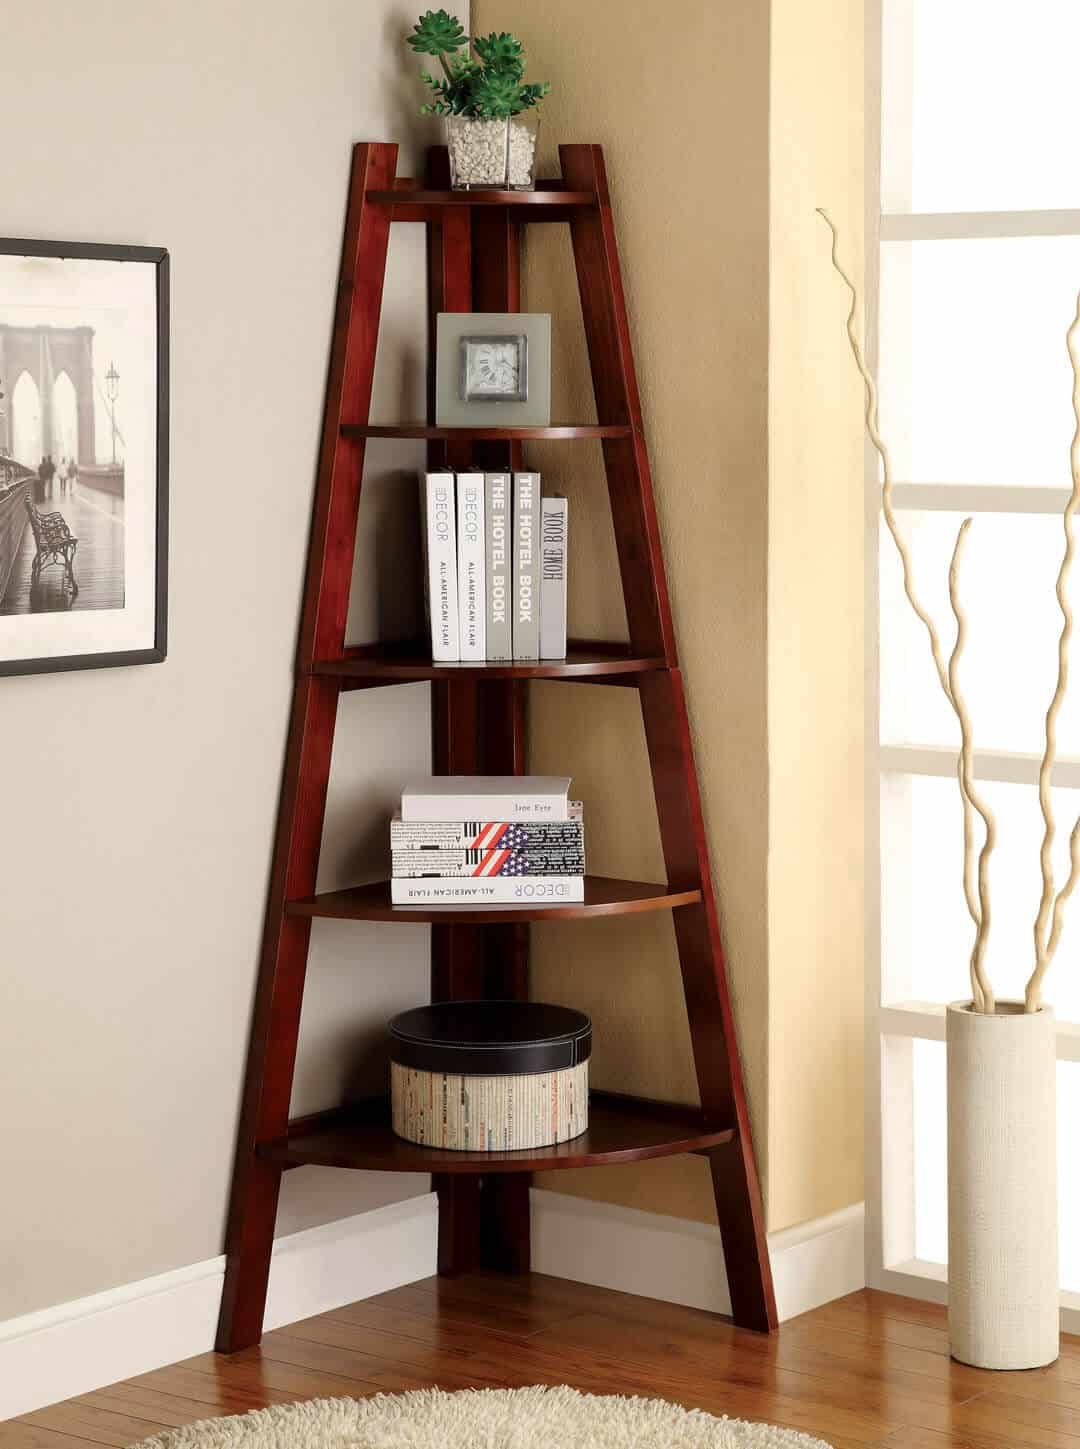 Simple tri-leg tower corner shelf.  This works in living rooms, dining rooms, foyers, bedrooms or hallways.